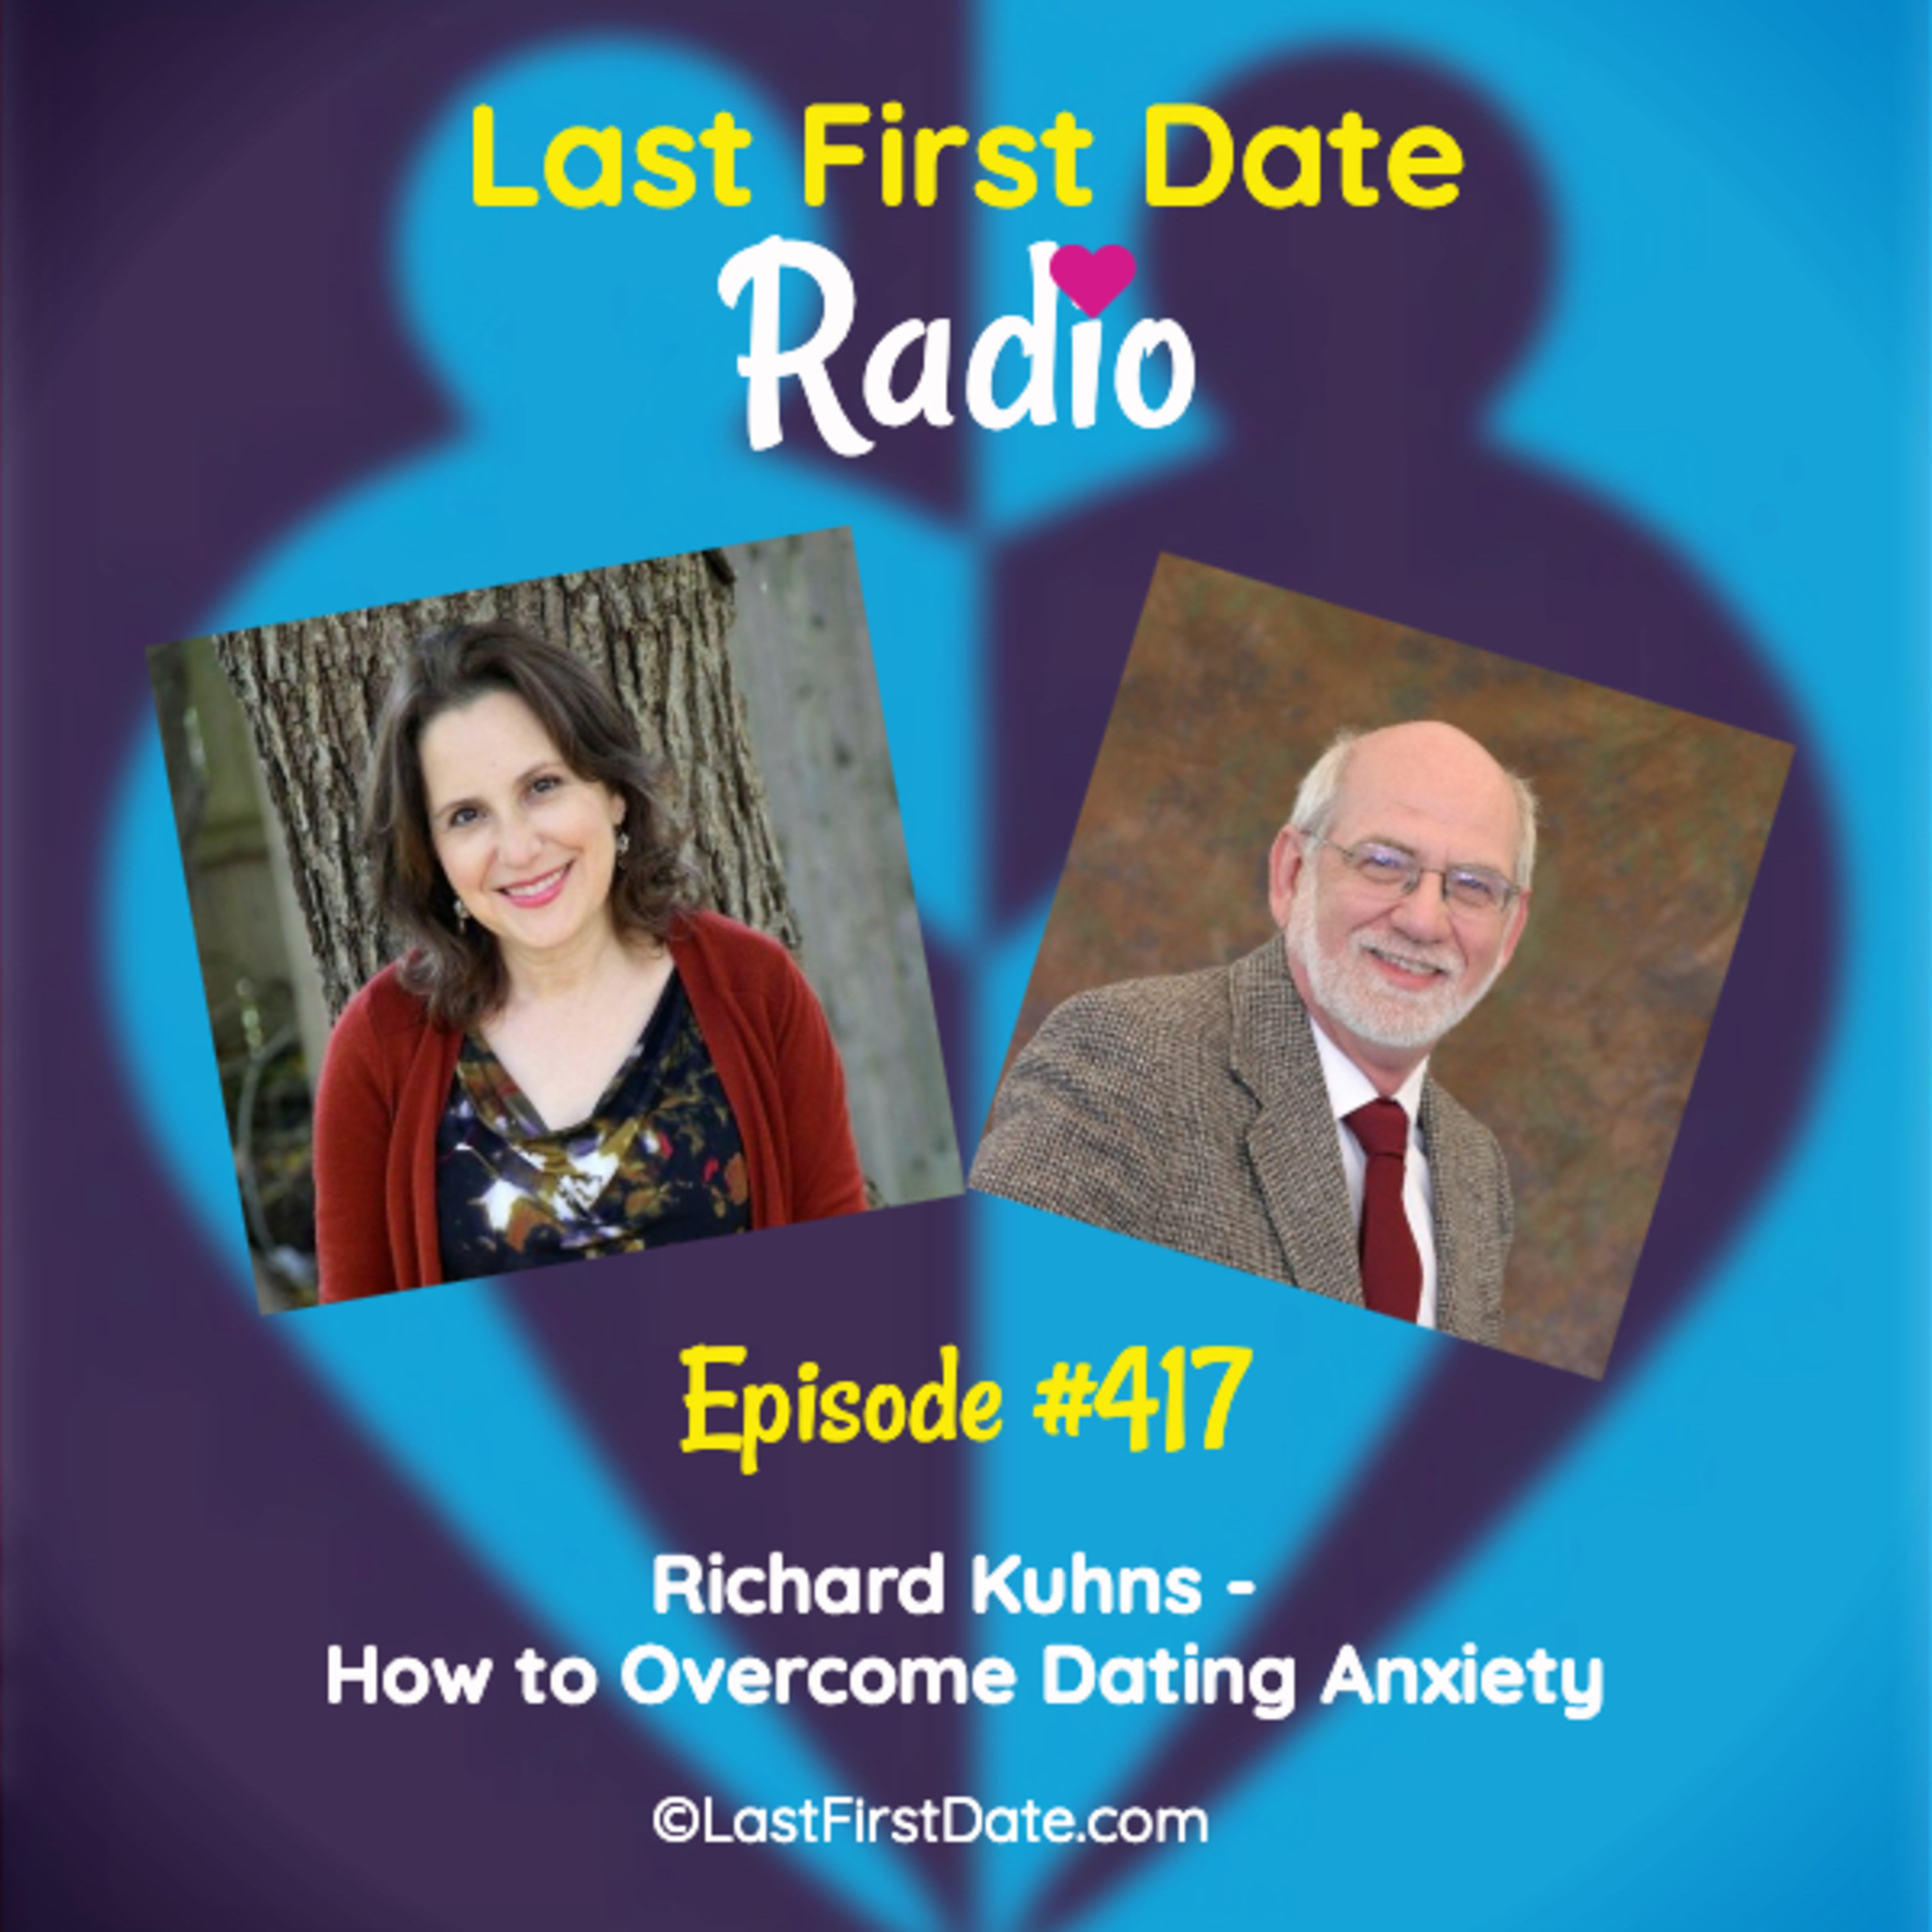 Last First Date Radio - EP 417: Richard Kuhns - How to Overcome Dating Anxiety